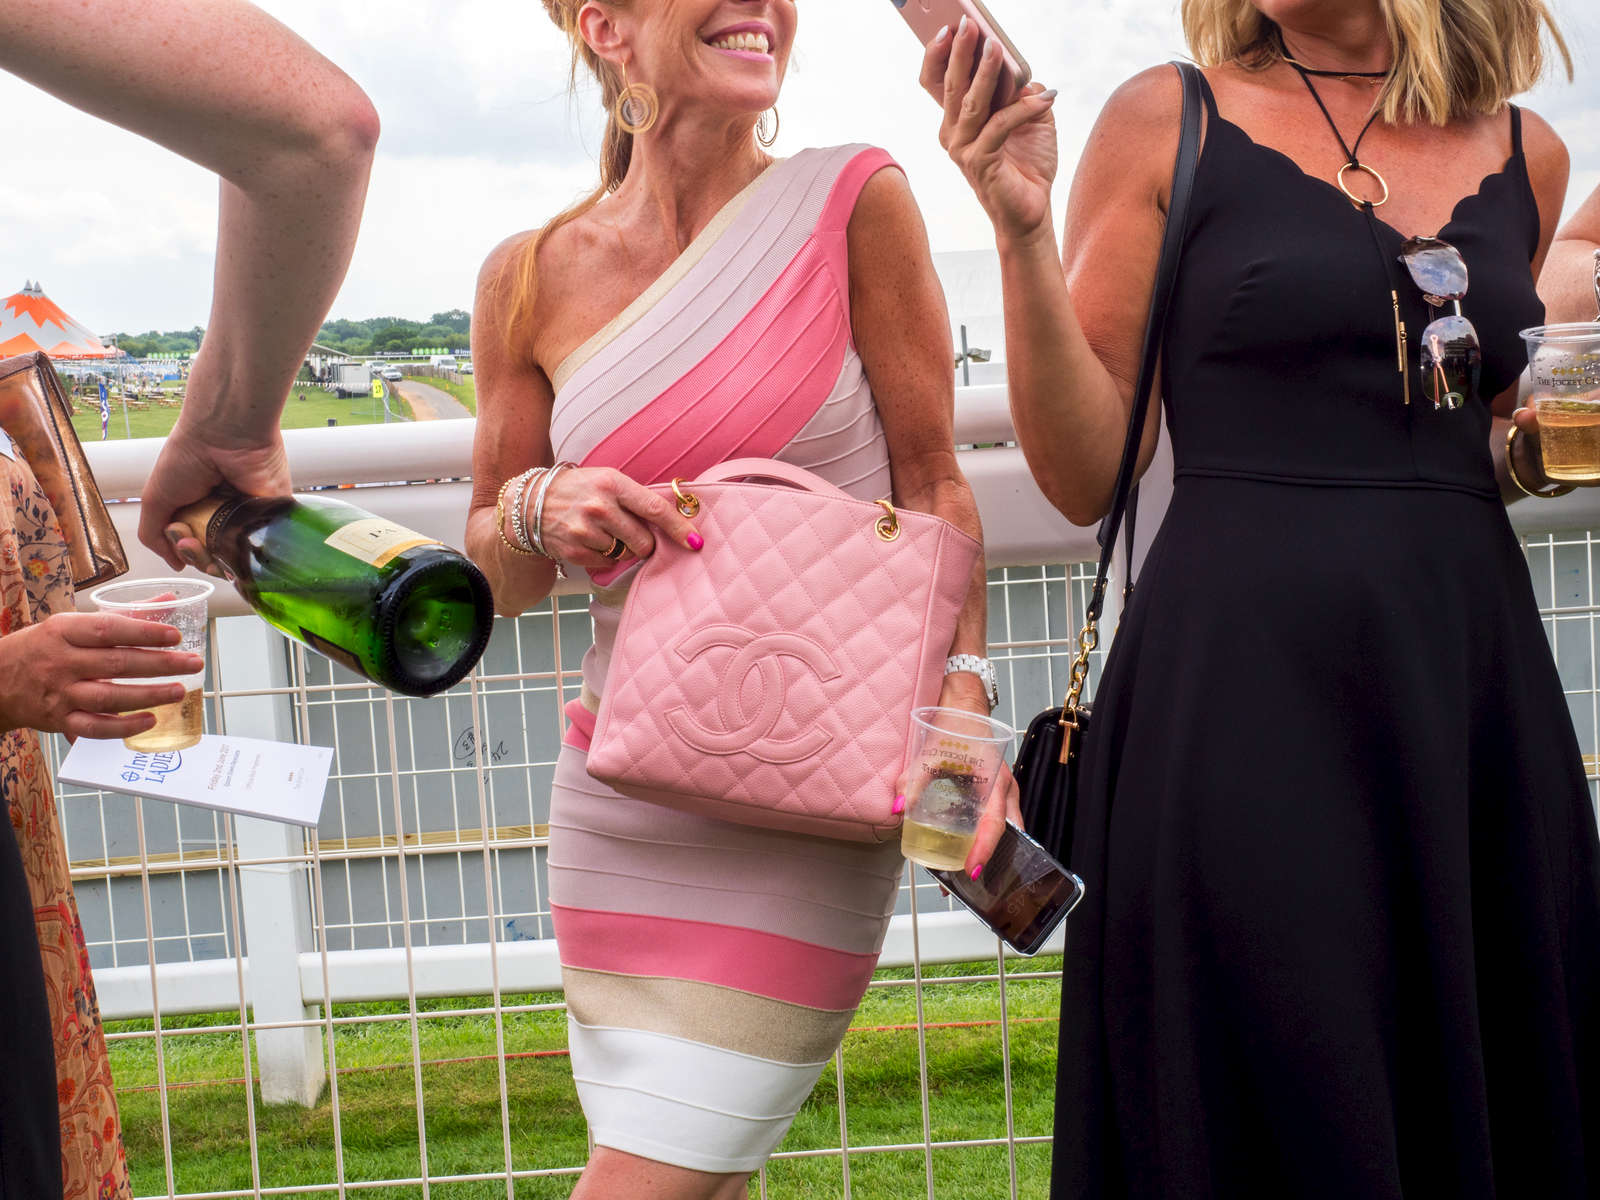 A woman with a Chanel bag socialises with friends at Epsom.Ladies' Day is traditionally held on the first Friday of June, a multitude of ladies and gents head to Epsom Downs Racecourse to experience a day full of high octane racing, music, glamour and fashion.